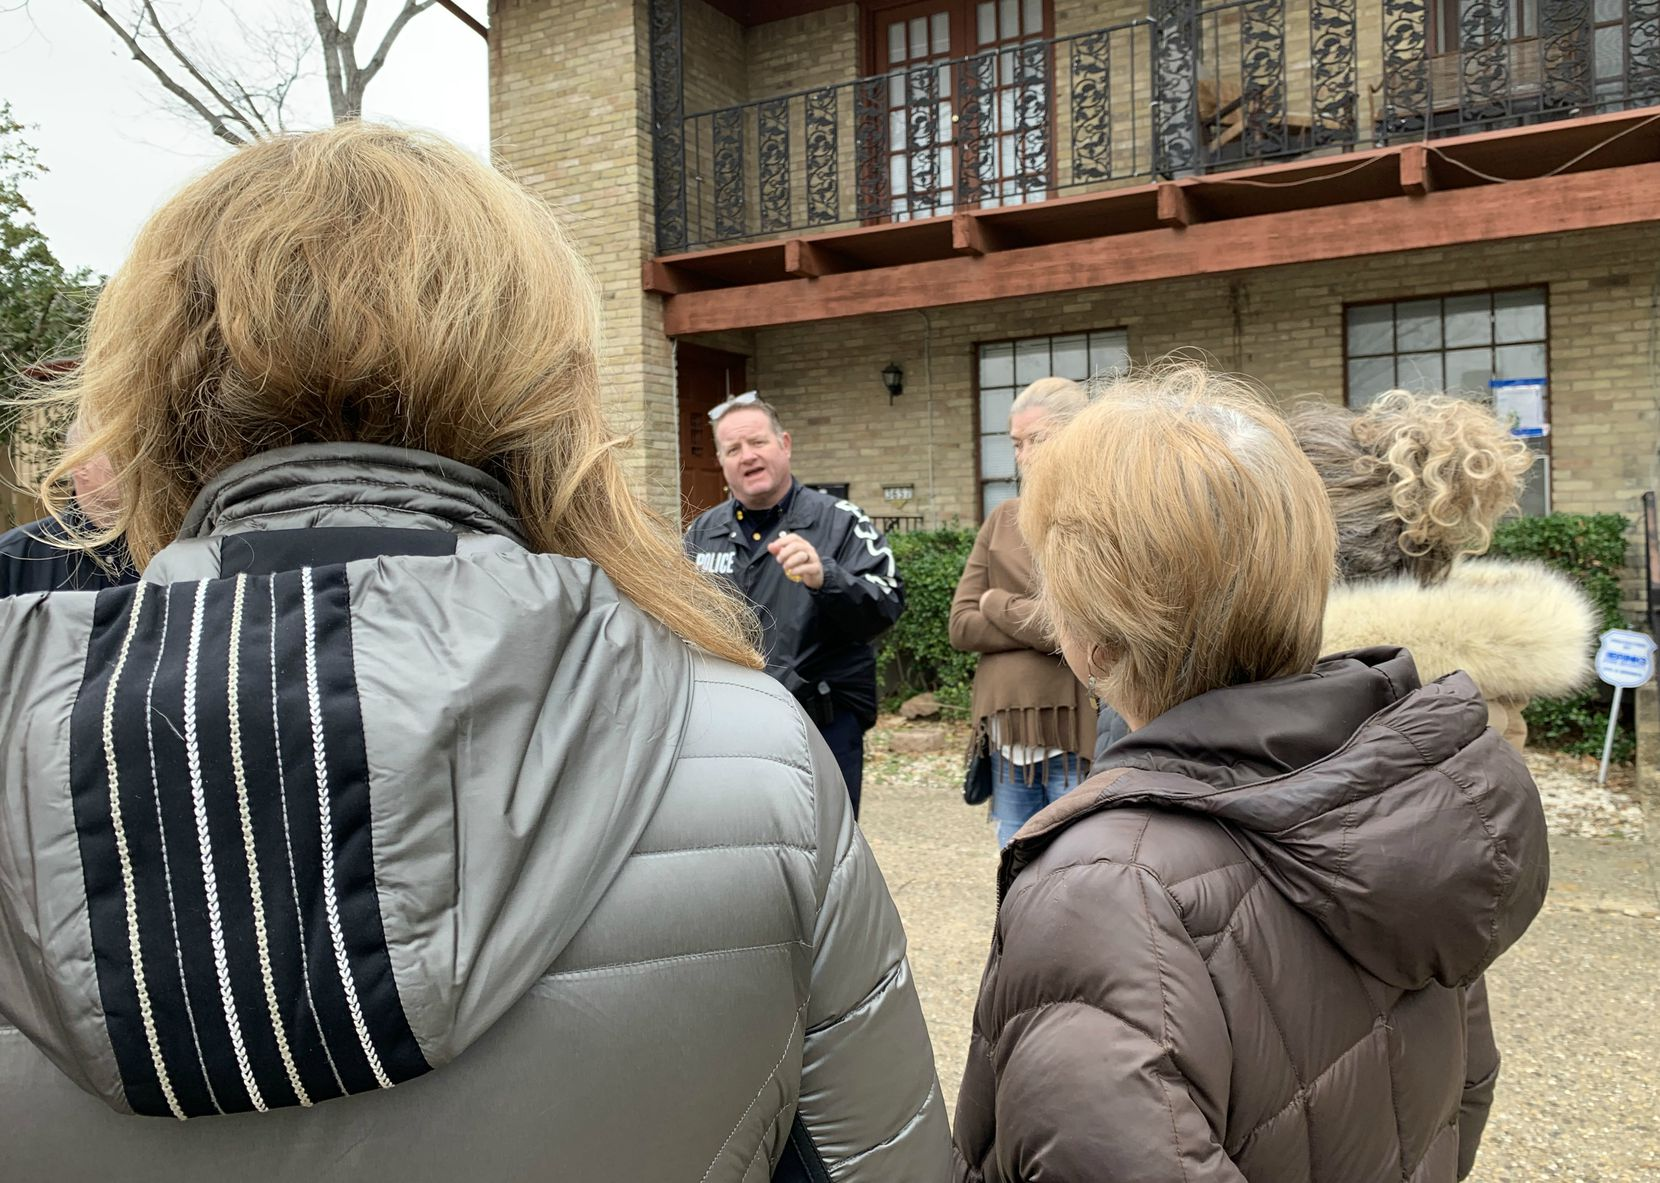 On Wednesday, Dallas Police Lt. Kevin Campbell reassured northwest Dallas residents that the department has not forgotten about residents living in tornado-damaged neighborhoods.